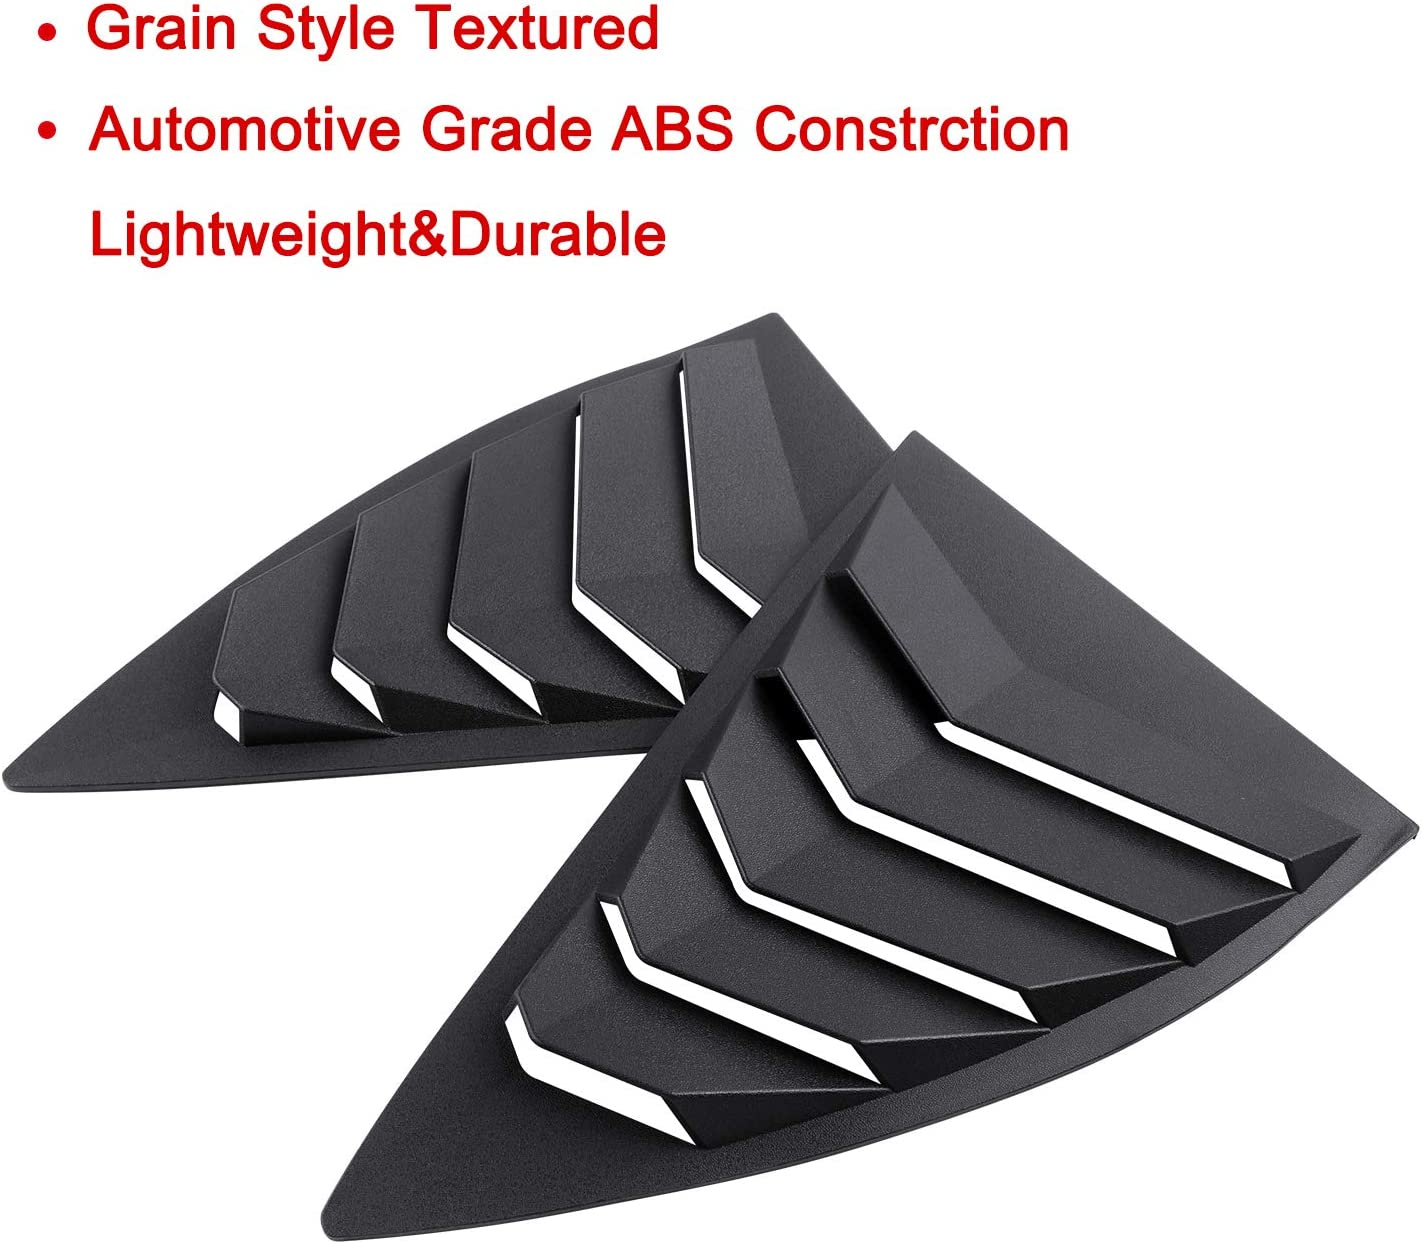 Dixuan Auto Parts Rear Window Louvers Windshield Sun Shade Cover Lambo Style Matte Black for Chevrolet Chevy Camaro 2016 2017 2018 2019